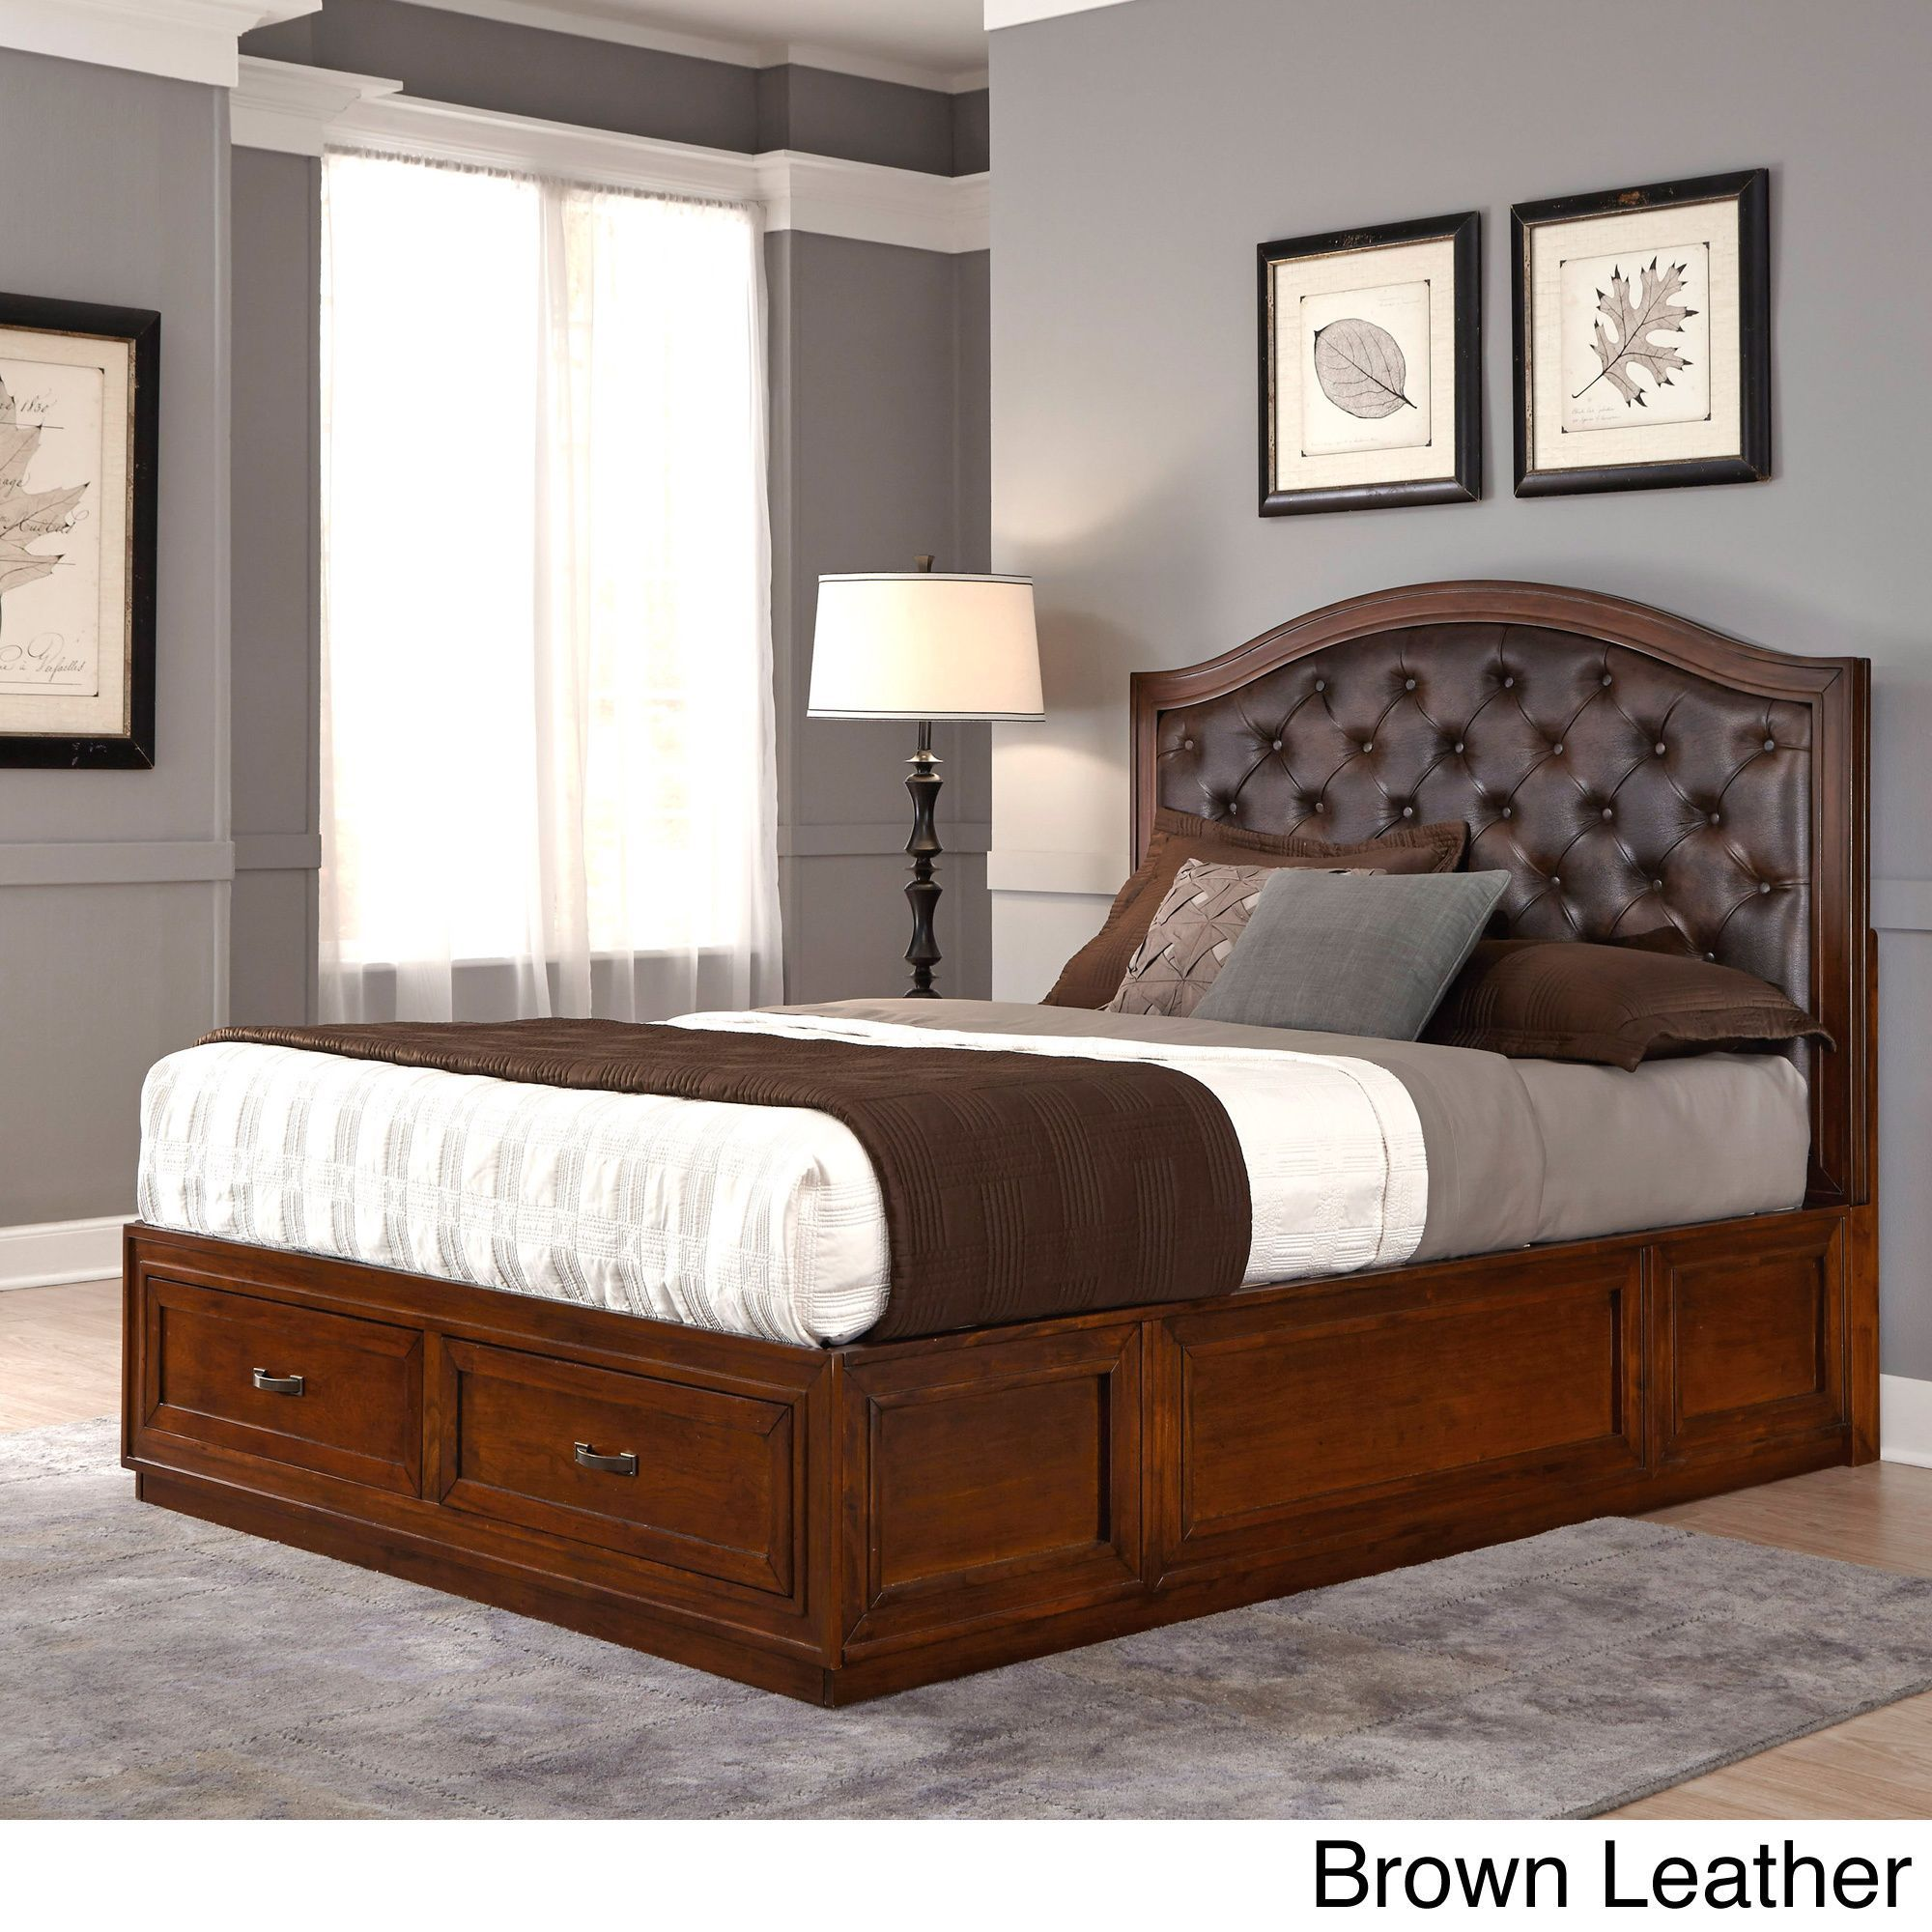 bed for complete inlay storage farmhouse love create my a design with build extra slats your geometric own and removable